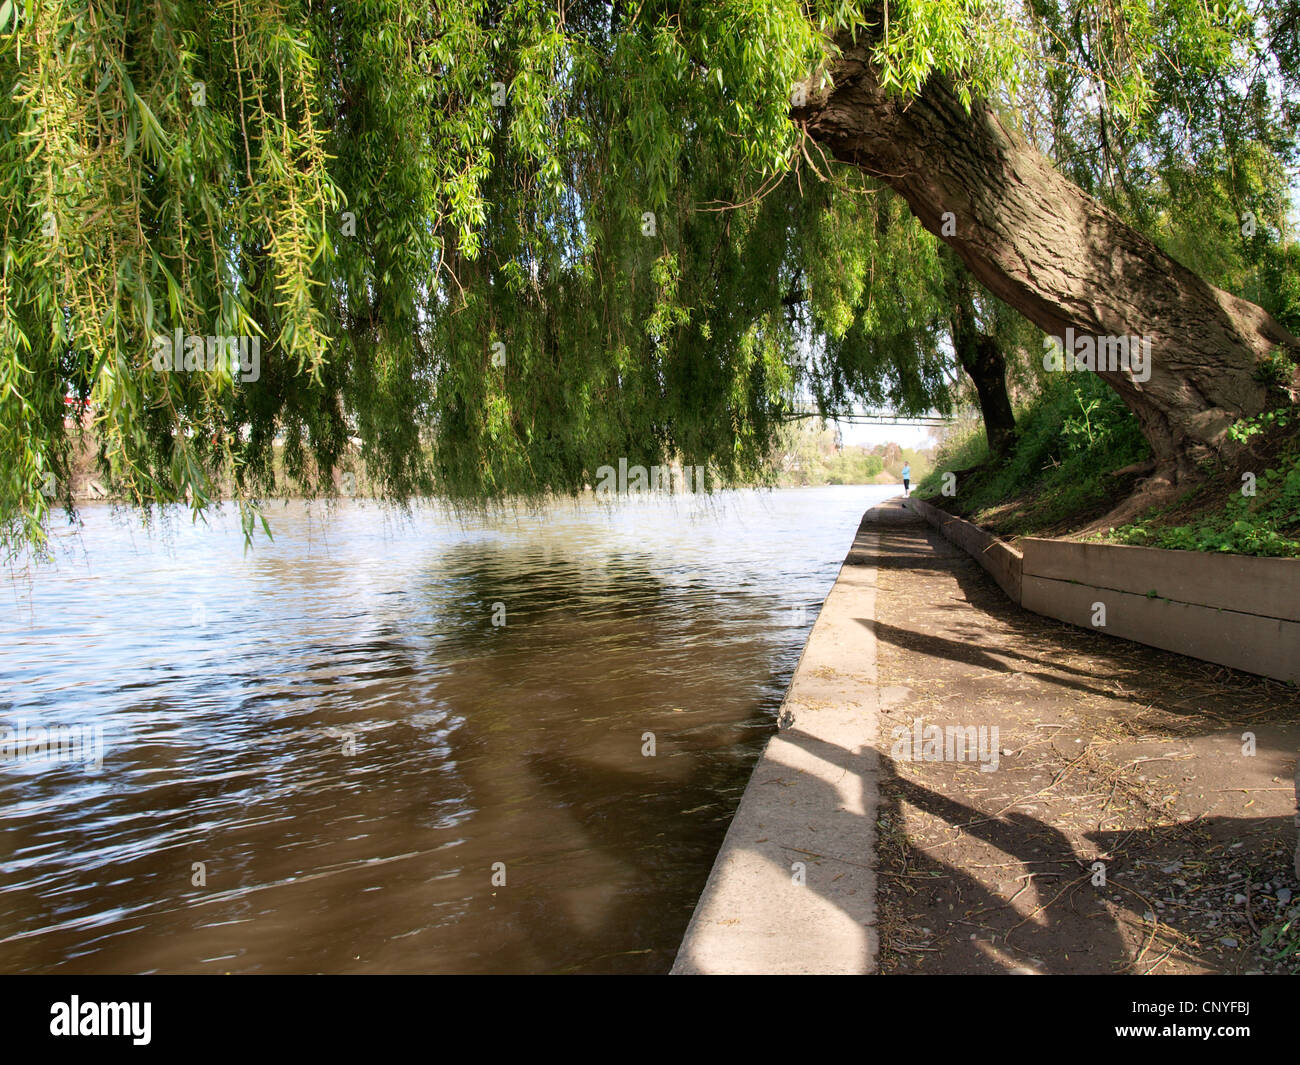 Weeping willow tree along the River Severn, UK Stock Photo